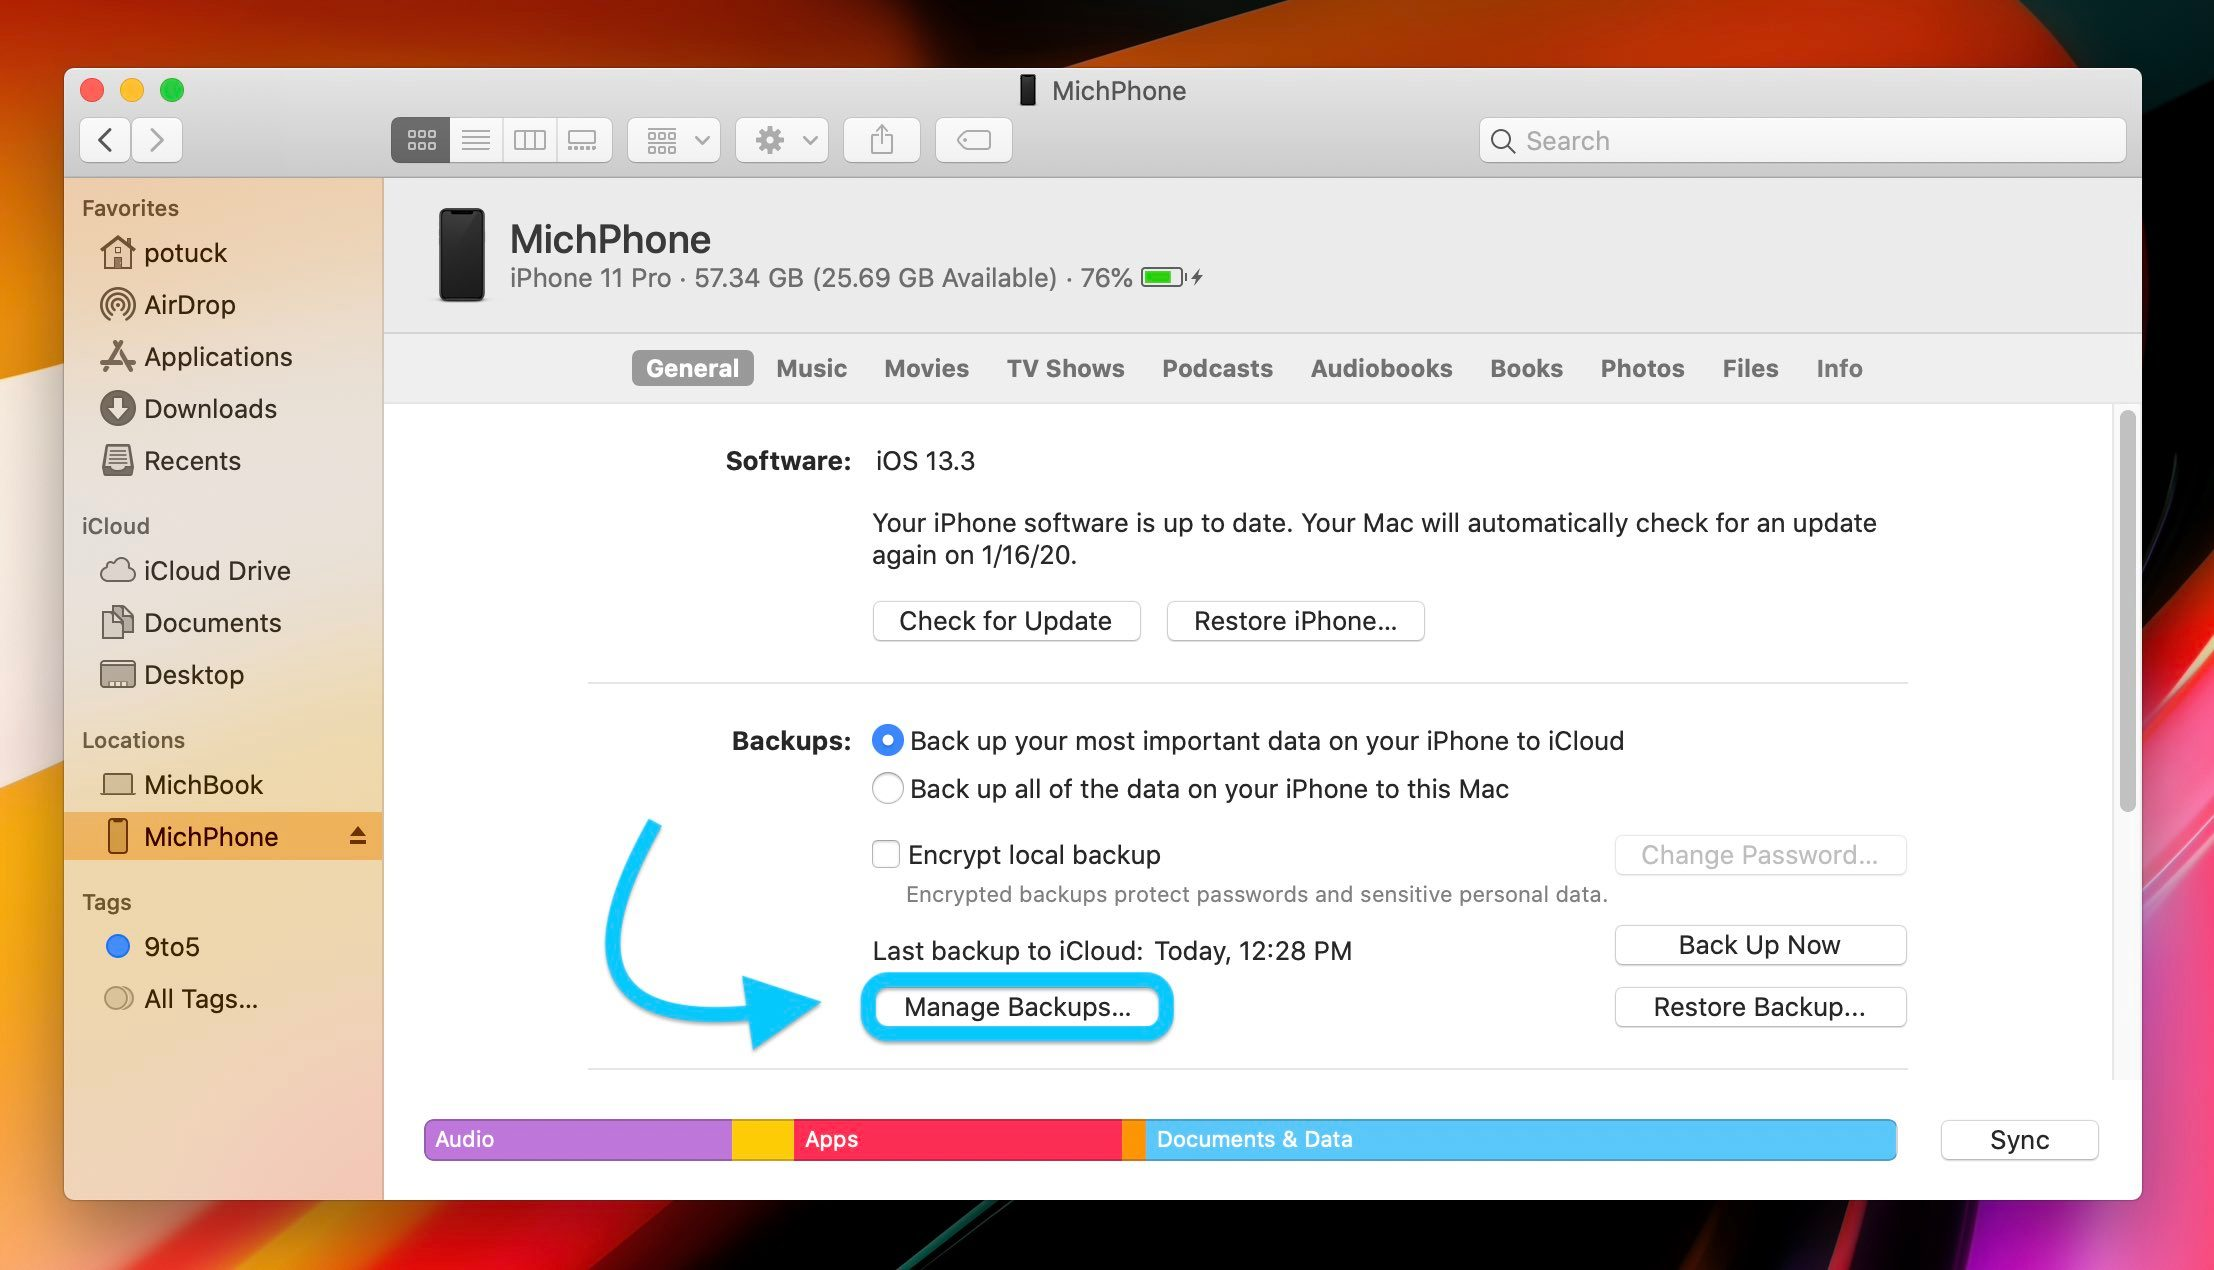 "<span href=""https://9to5mac.com/2020/01/15/how-to-delete-iphone-backups-mac-macos-catalina/"">Mac: How to delete iPhone backups in macOS Catalina</a>"